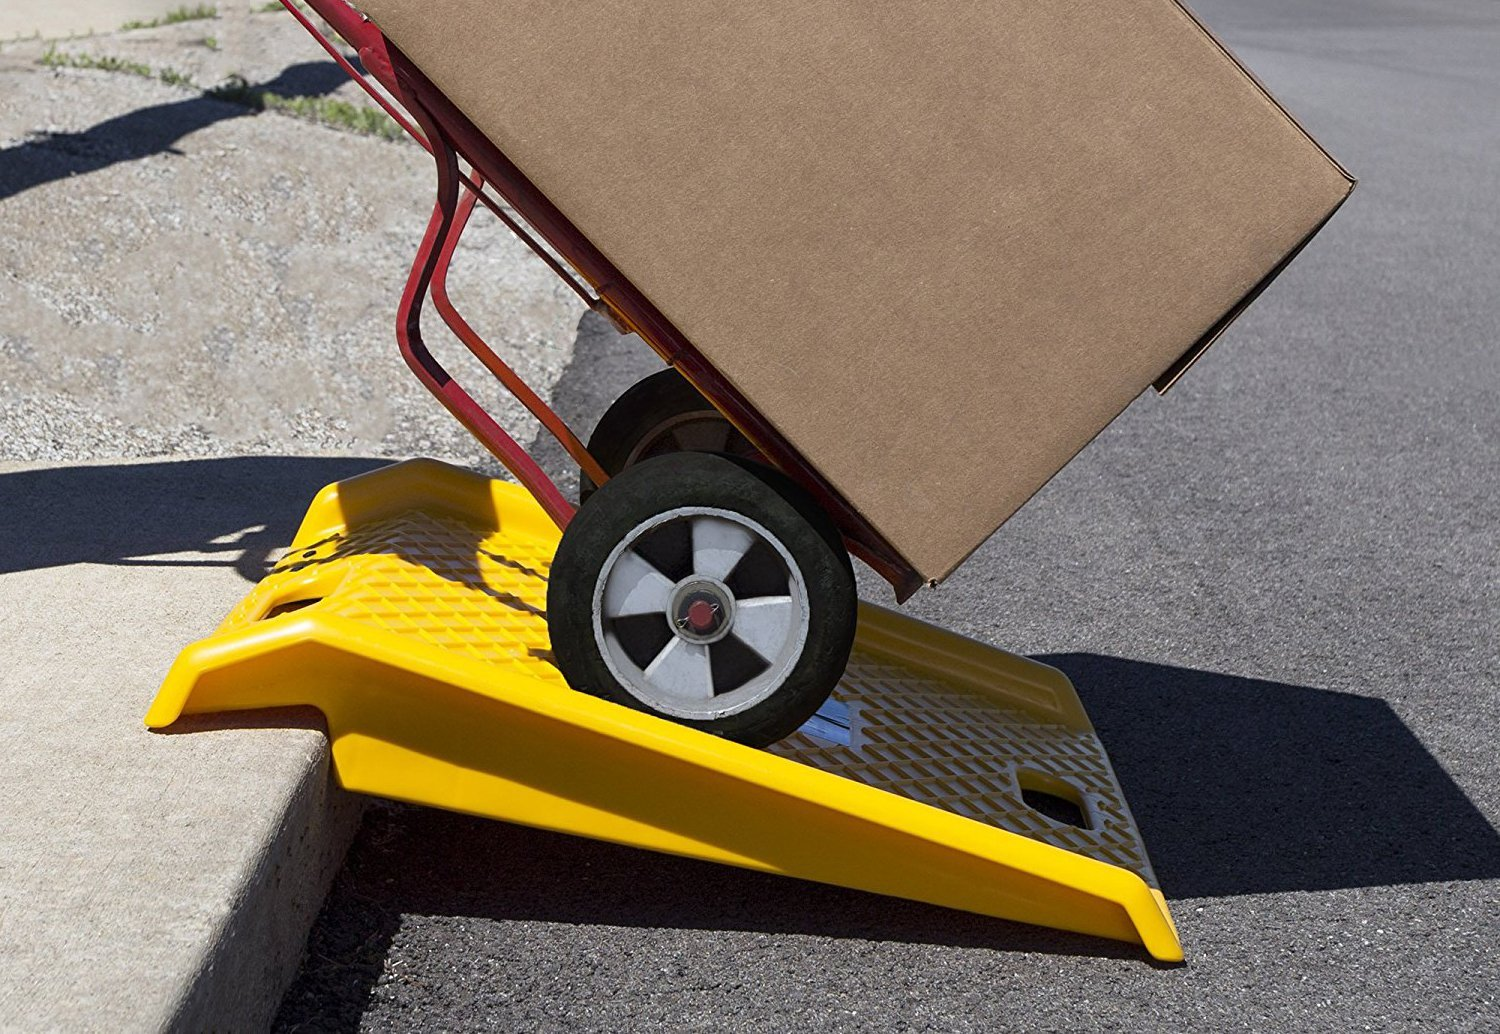 Curb Ramp - Heavy Duty 1000 Lbs Load Capacity - Yellow High Density Polyethylene for Hand Truck Delivery by BUNKERWALL (Image #6)